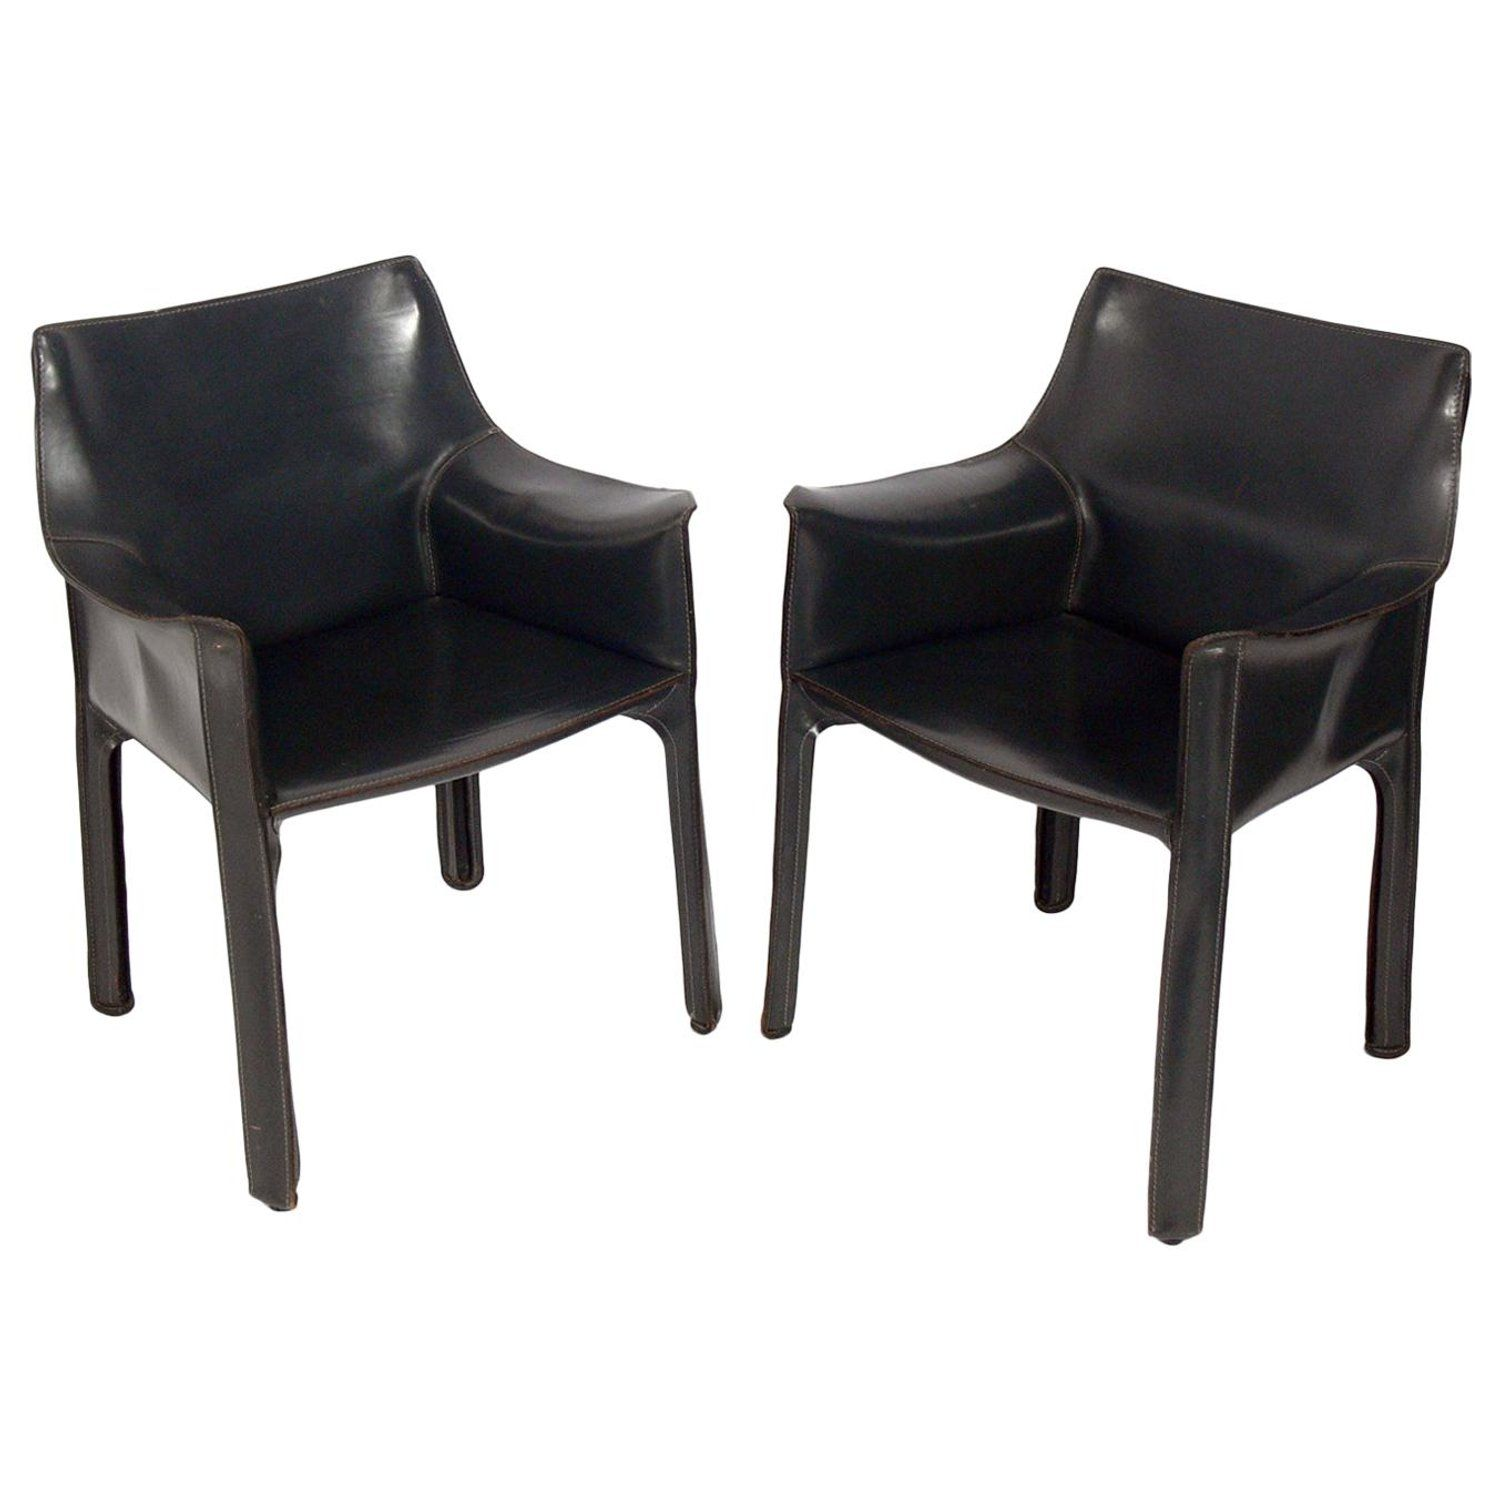 Groovy Pair Of Charcoal Gray Leather Cab Chairs By Mario Bellini Ocoug Best Dining Table And Chair Ideas Images Ocougorg